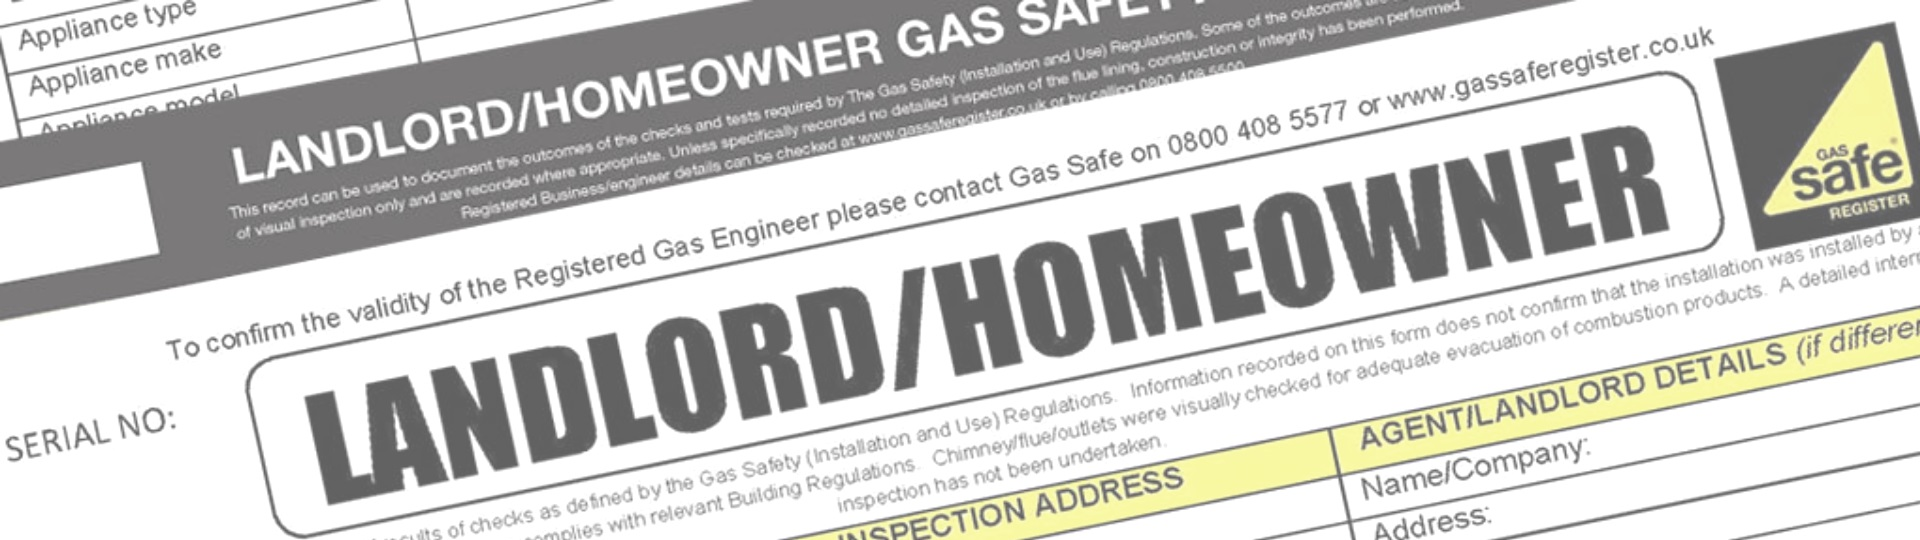 Gas Saftey Certificates Combe Dingle